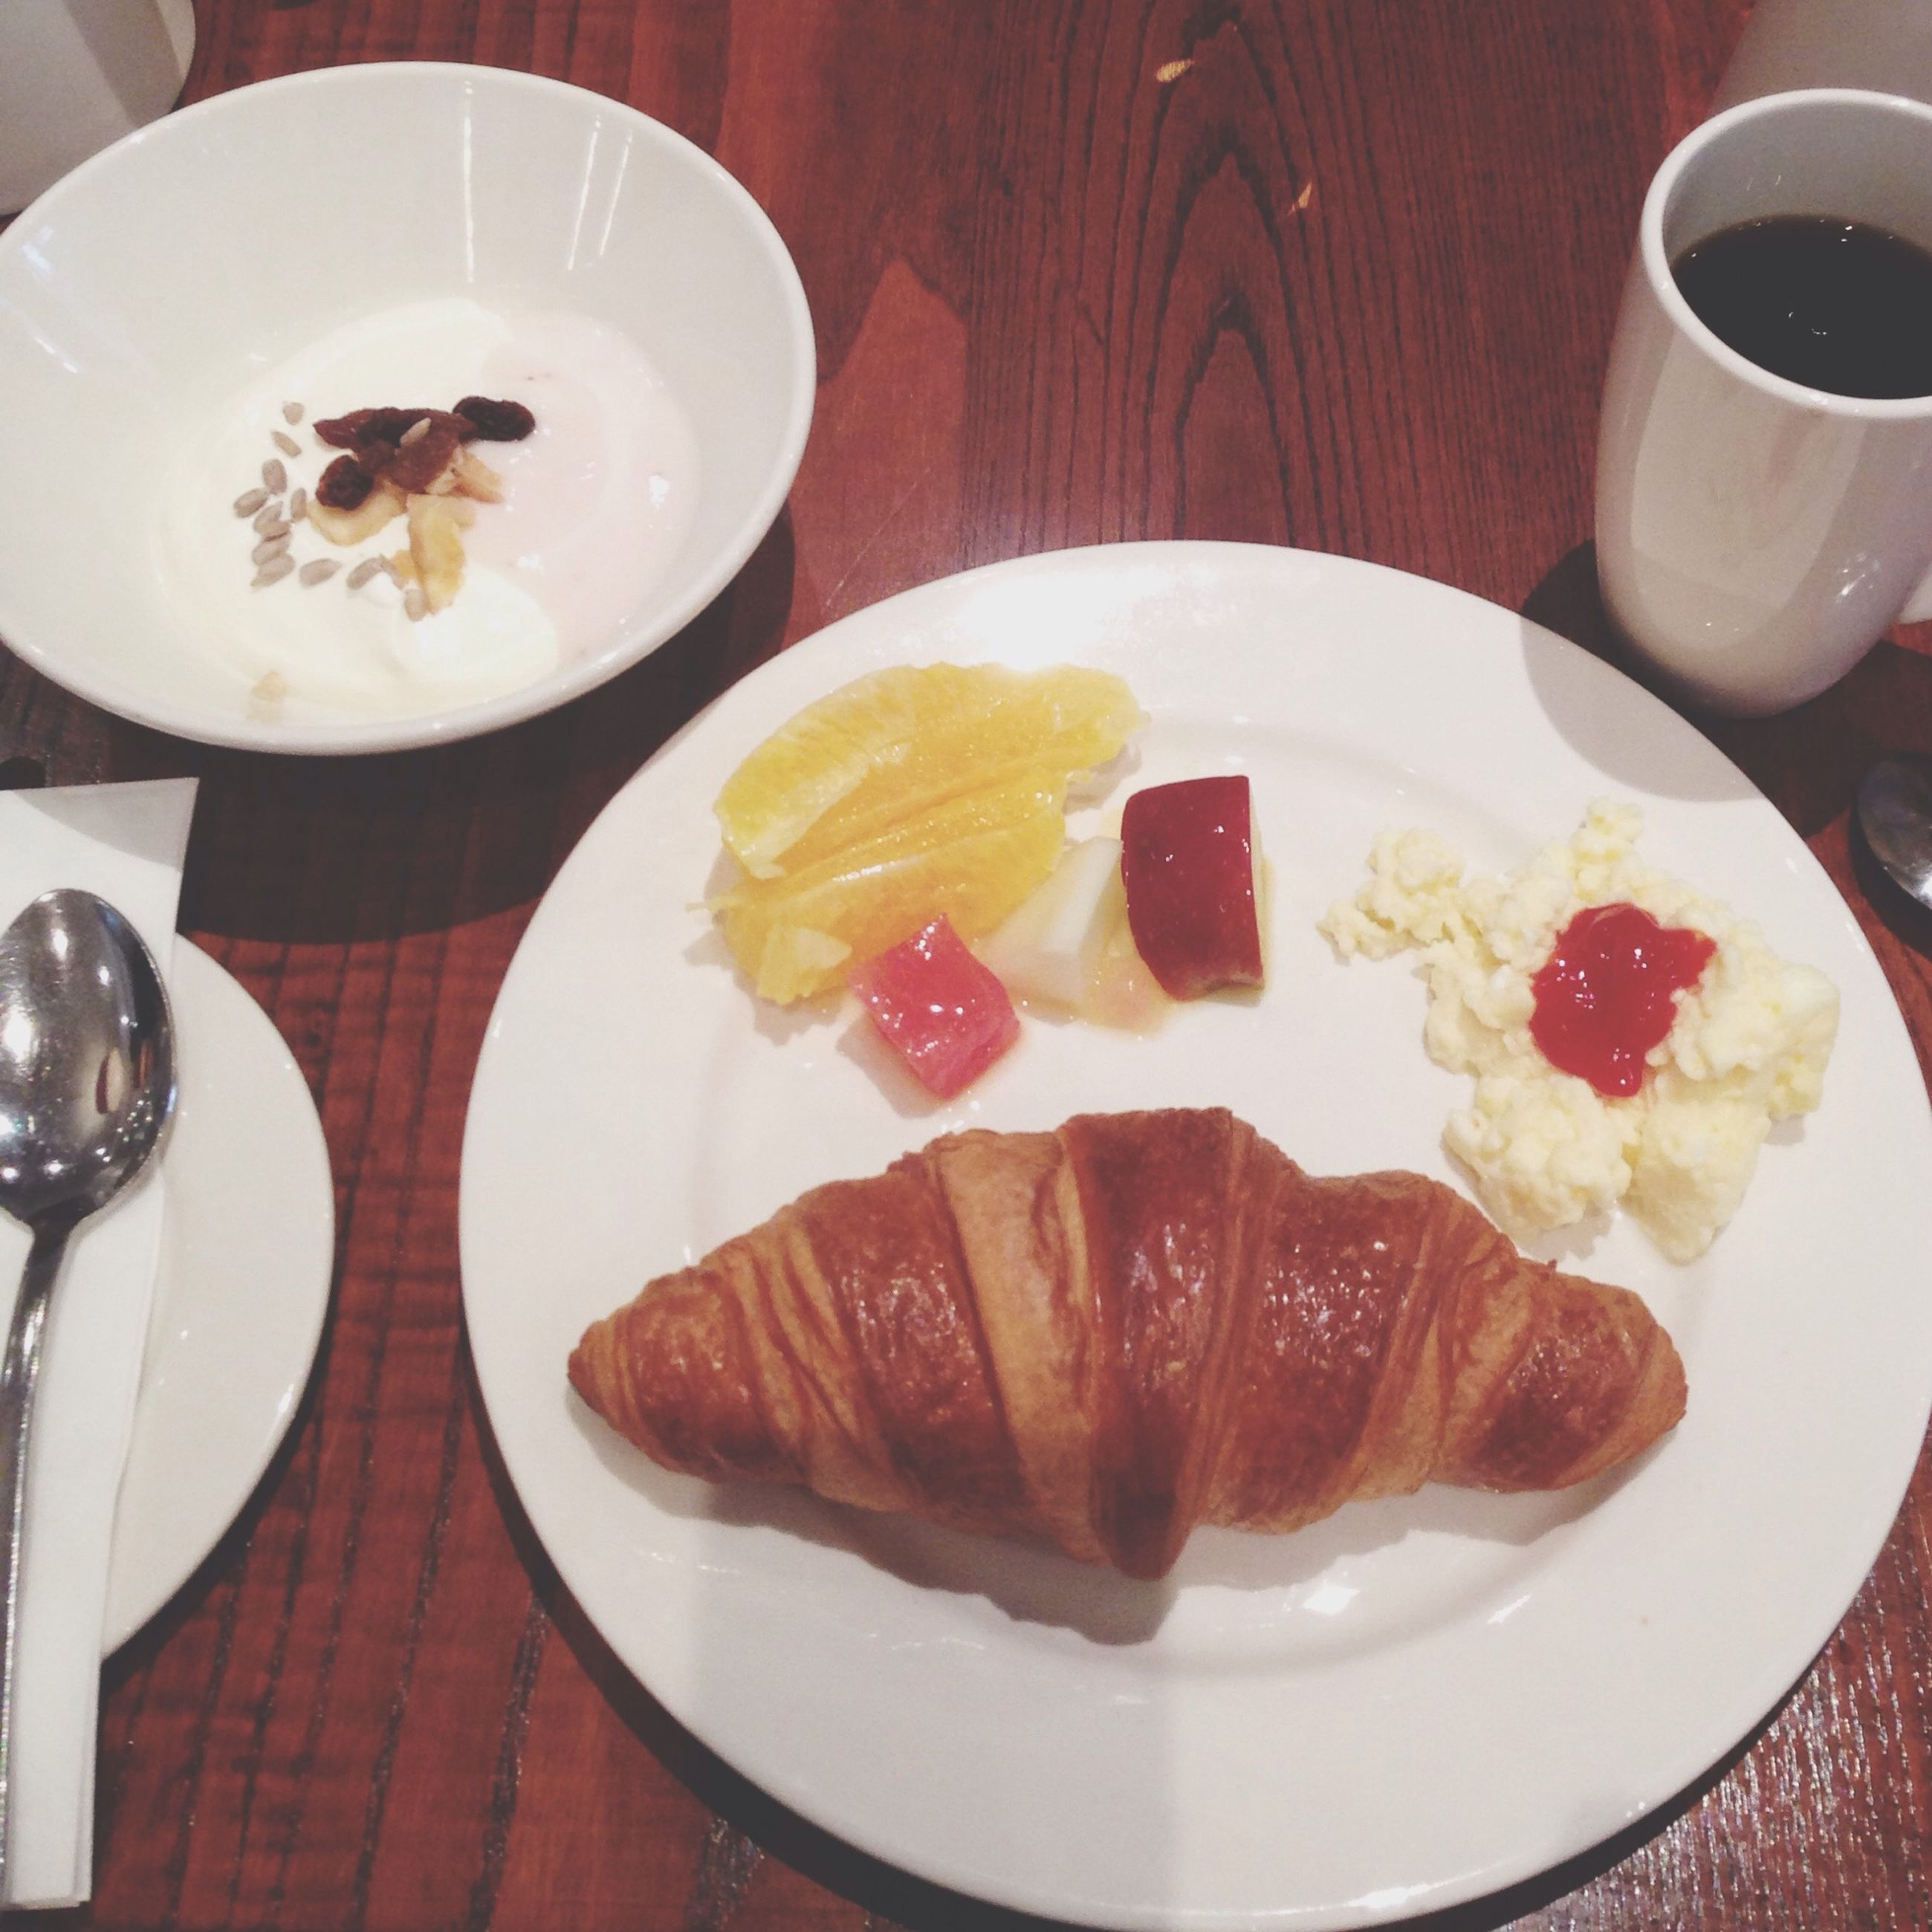 food and drink, food, freshness, ready-to-eat, indoors, plate, sweet food, table, still life, indulgence, serving size, dessert, unhealthy eating, breakfast, temptation, high angle view, meal, served, fork, cake